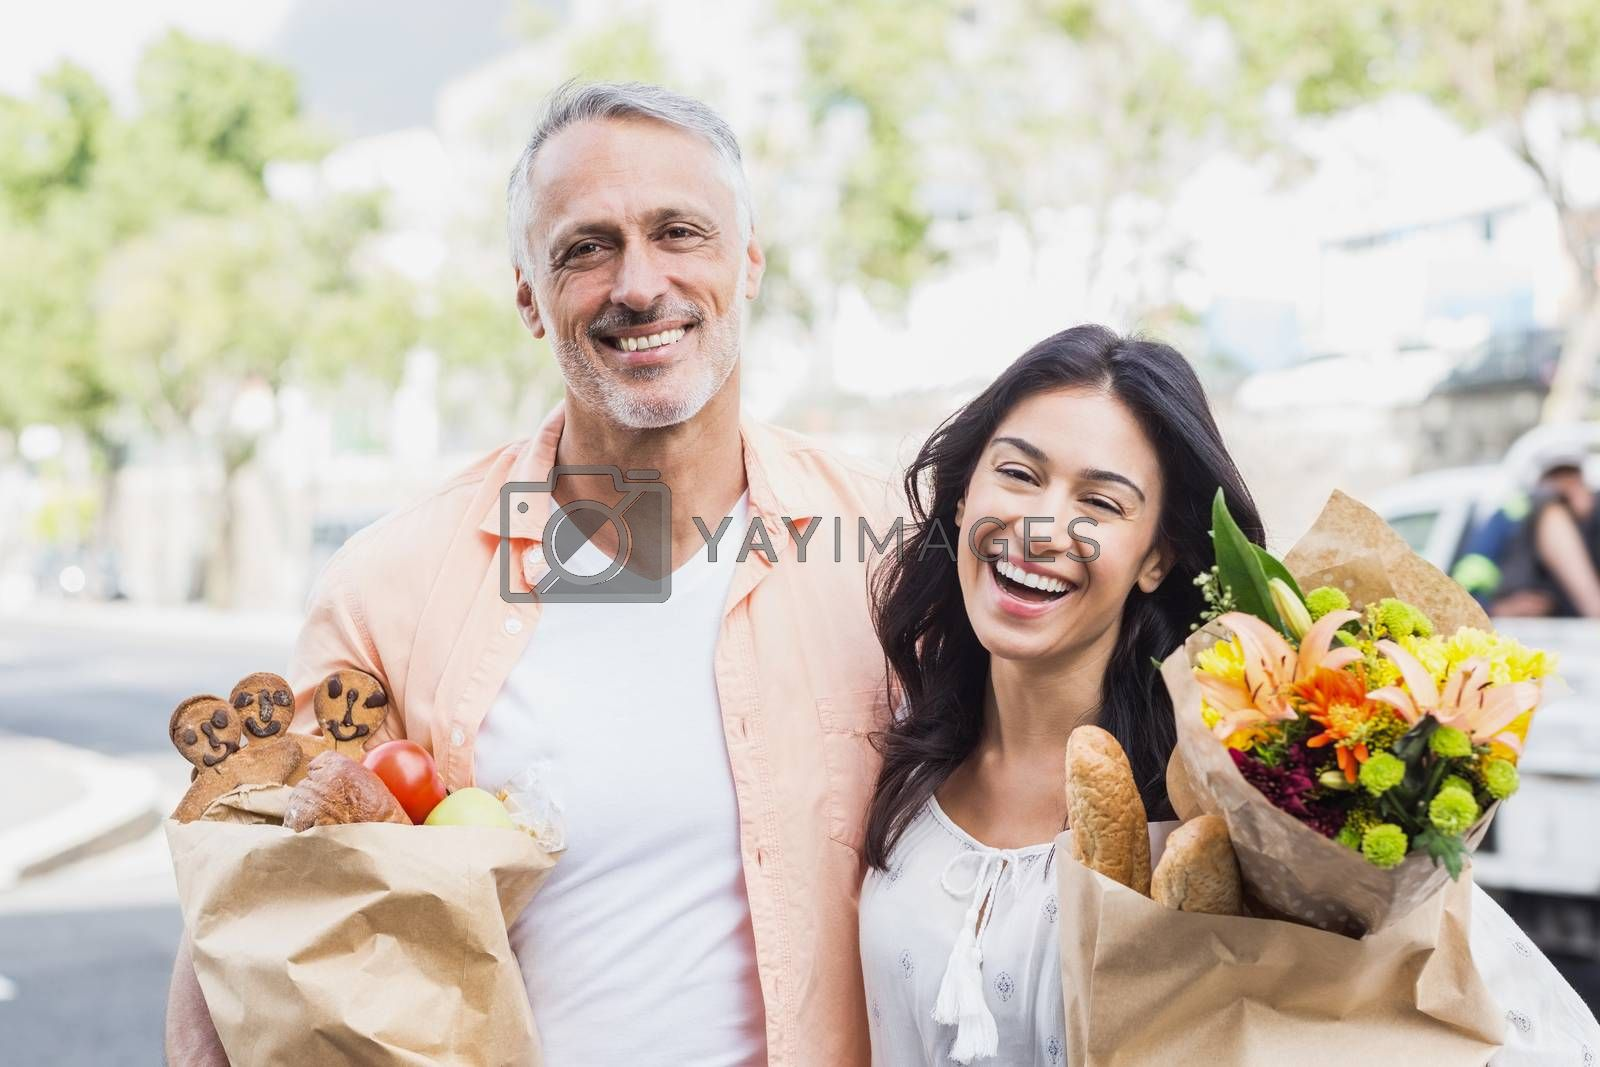 Portrait of happy couple with grocery bags standing outdoors